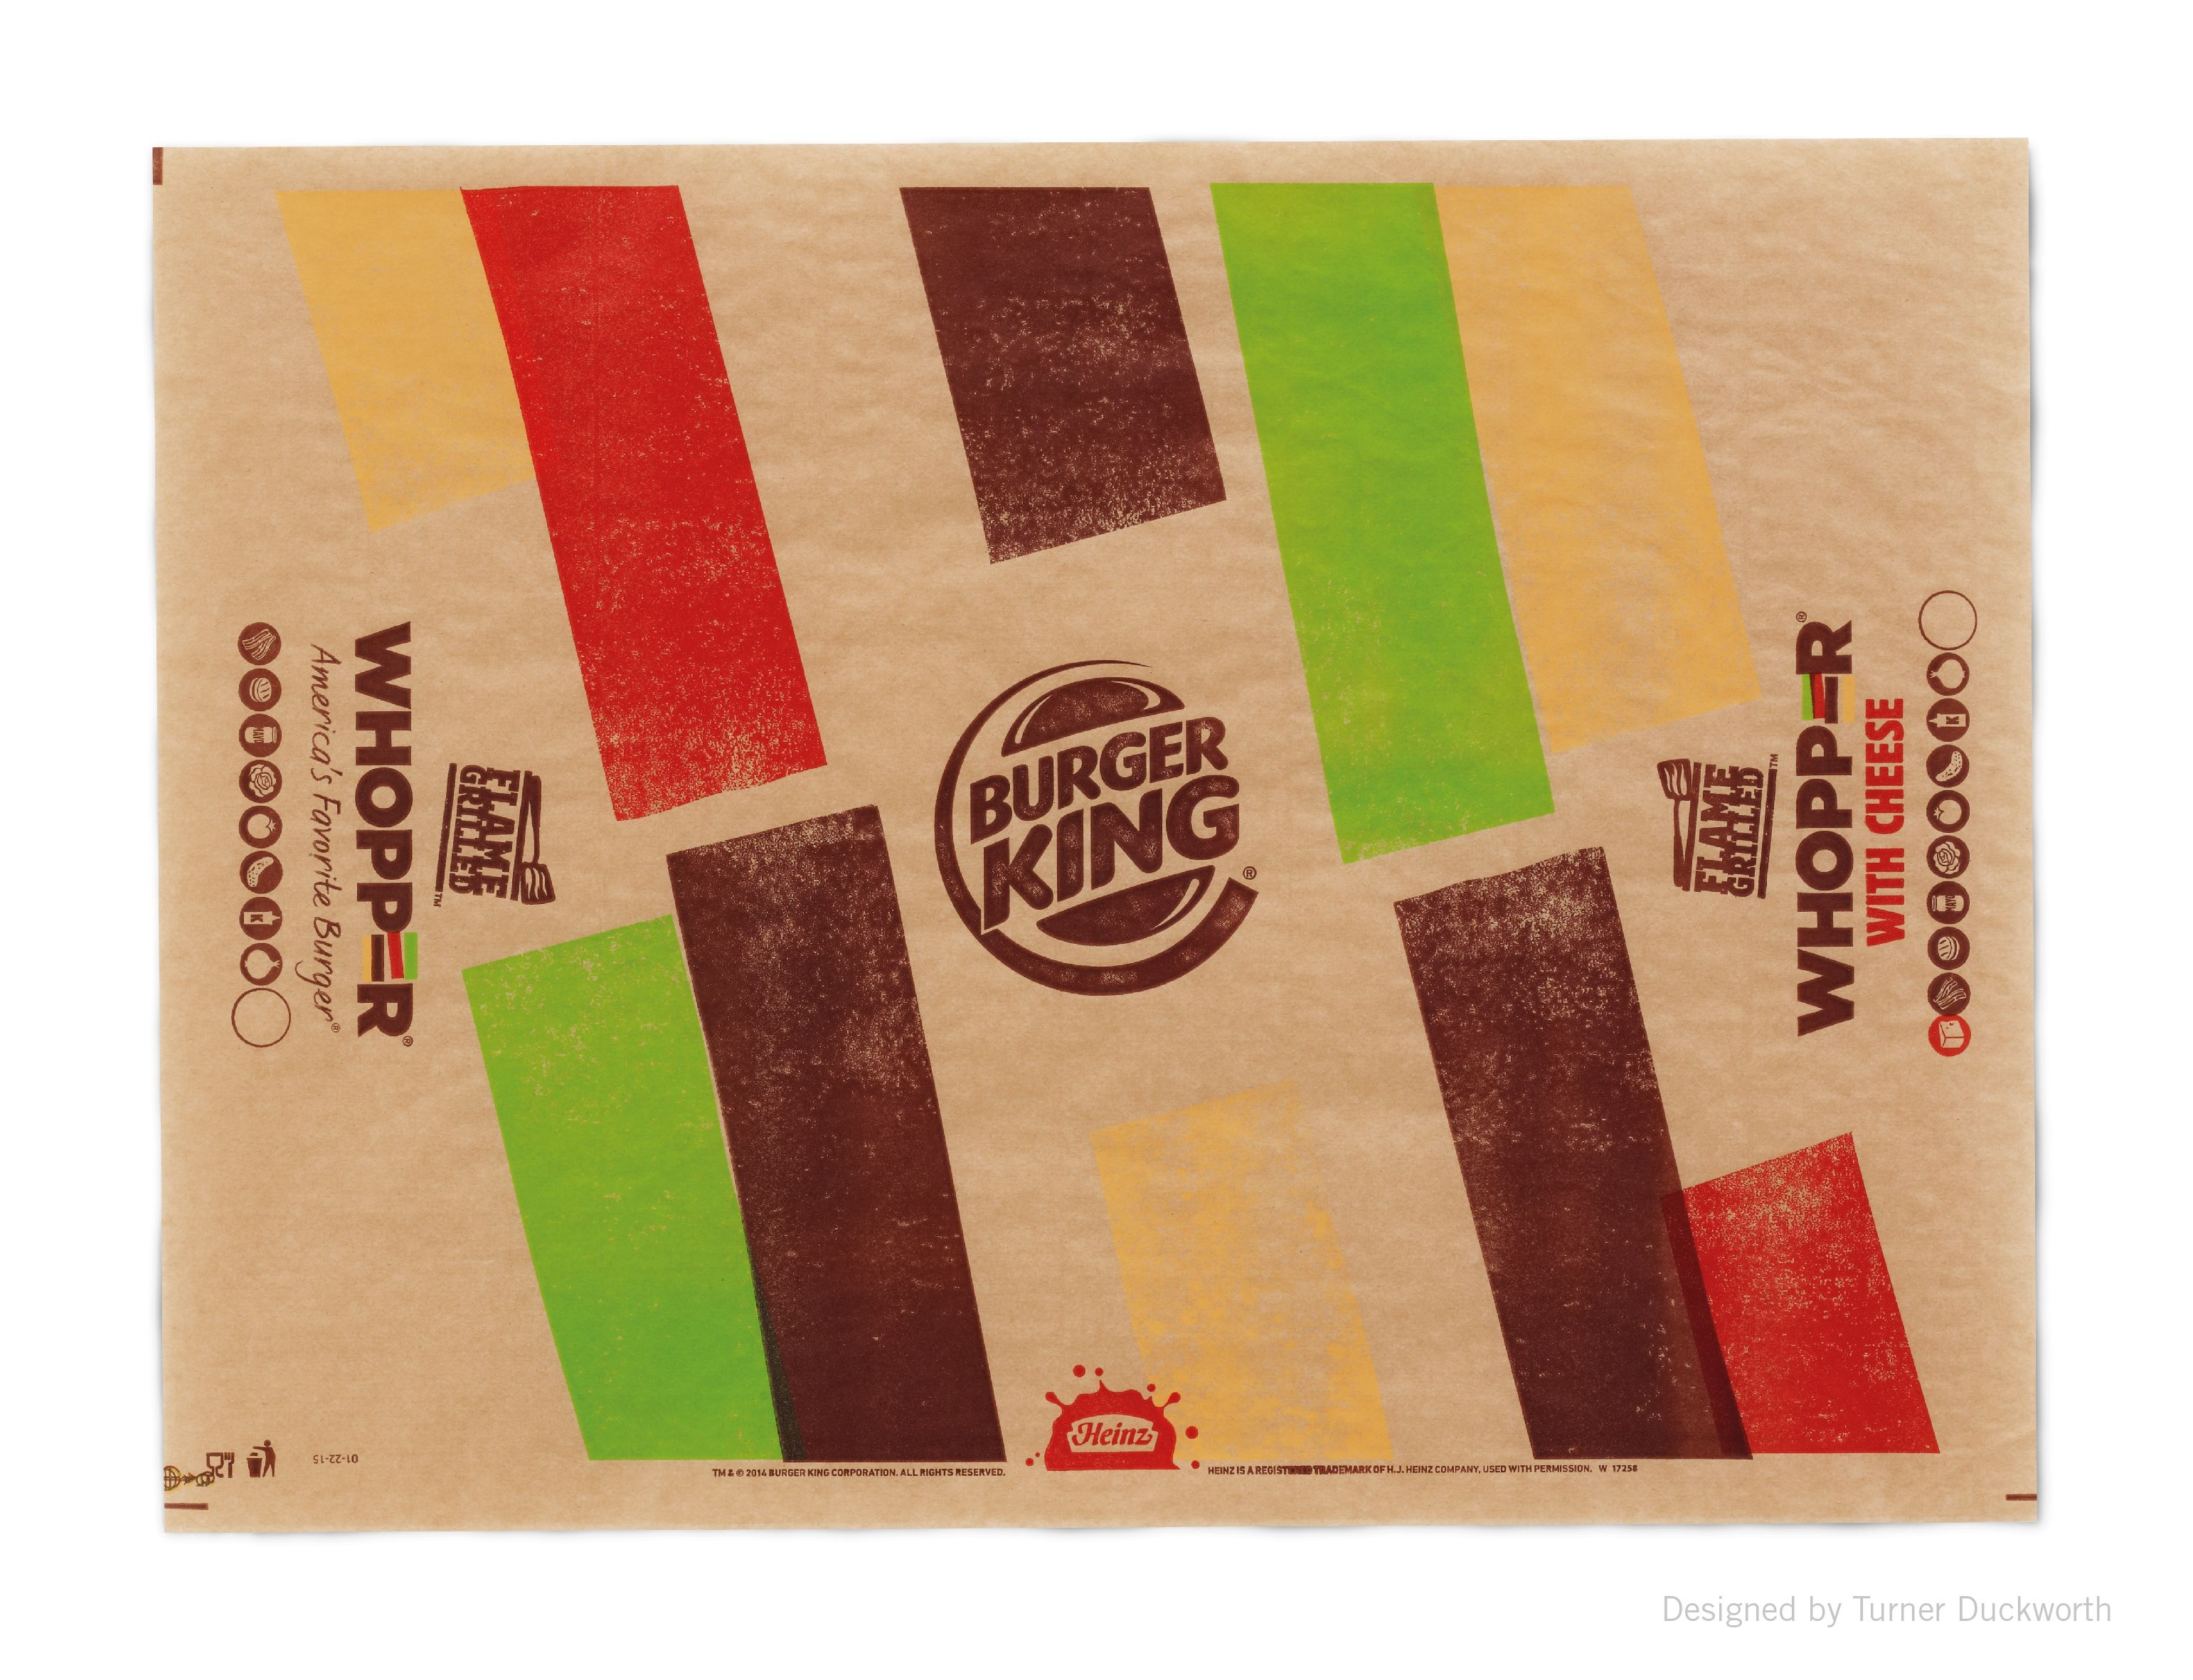 medium resolution of burger king packaging and visual identity designed by turner duckworth